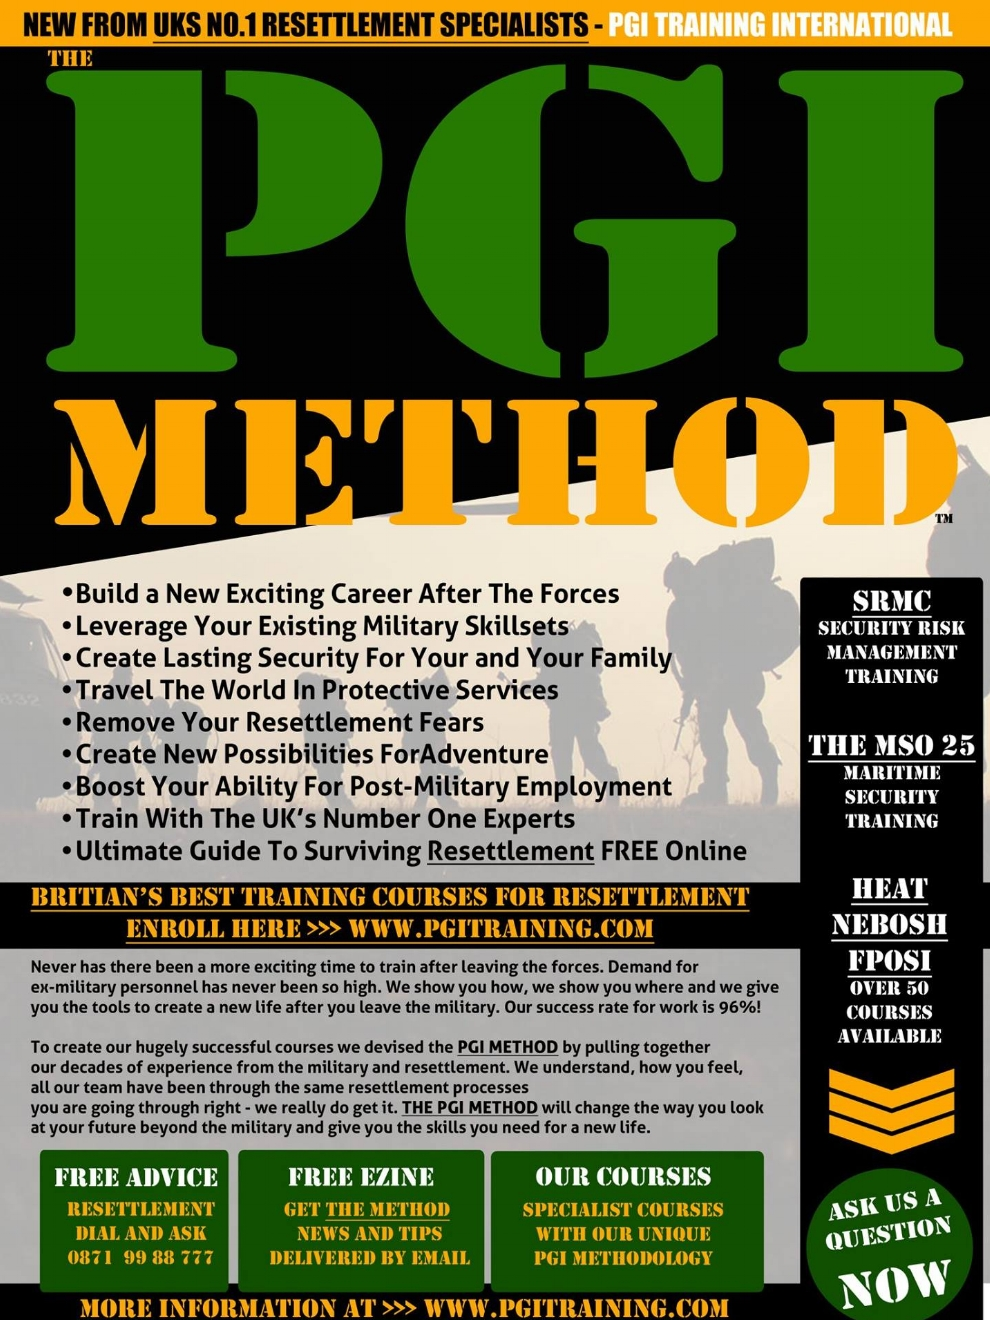 This Approach Steps Deeply Into An Existing Conversation Based On Future Fears - This succesful Ad took a unique approach to post-army careers by creating an exciting adrenaline filled future rather than just another boring training program. It did it's job well.